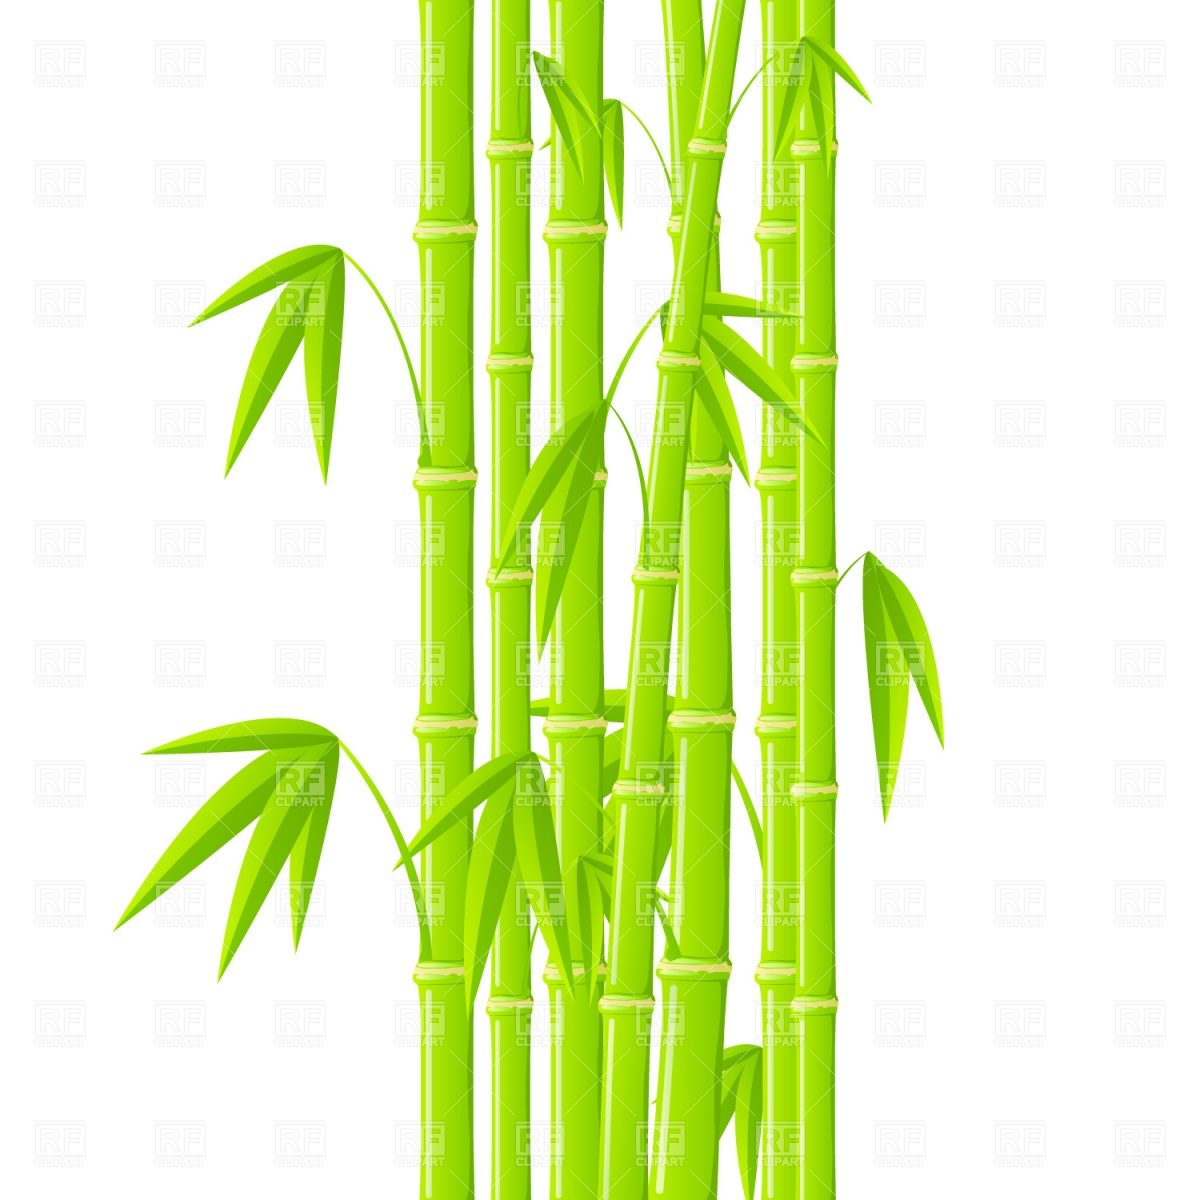 Green bamboo stems with leaves Royalty Free Vector Clip Art